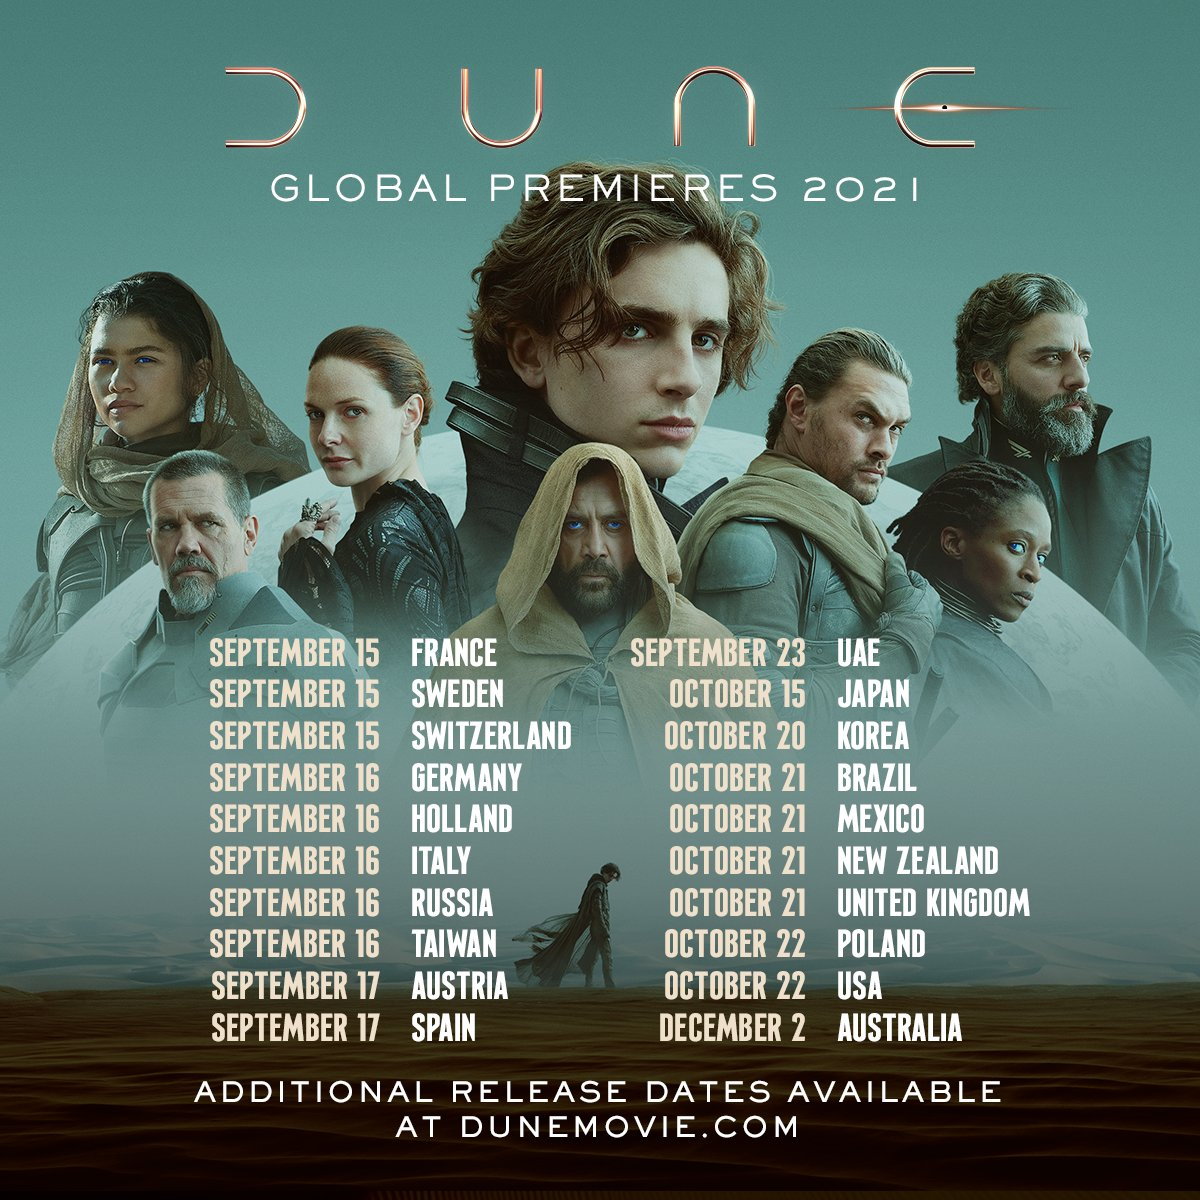 This week #DuneMovie begins its global roll out! Do you have your ticket yet? 🎟